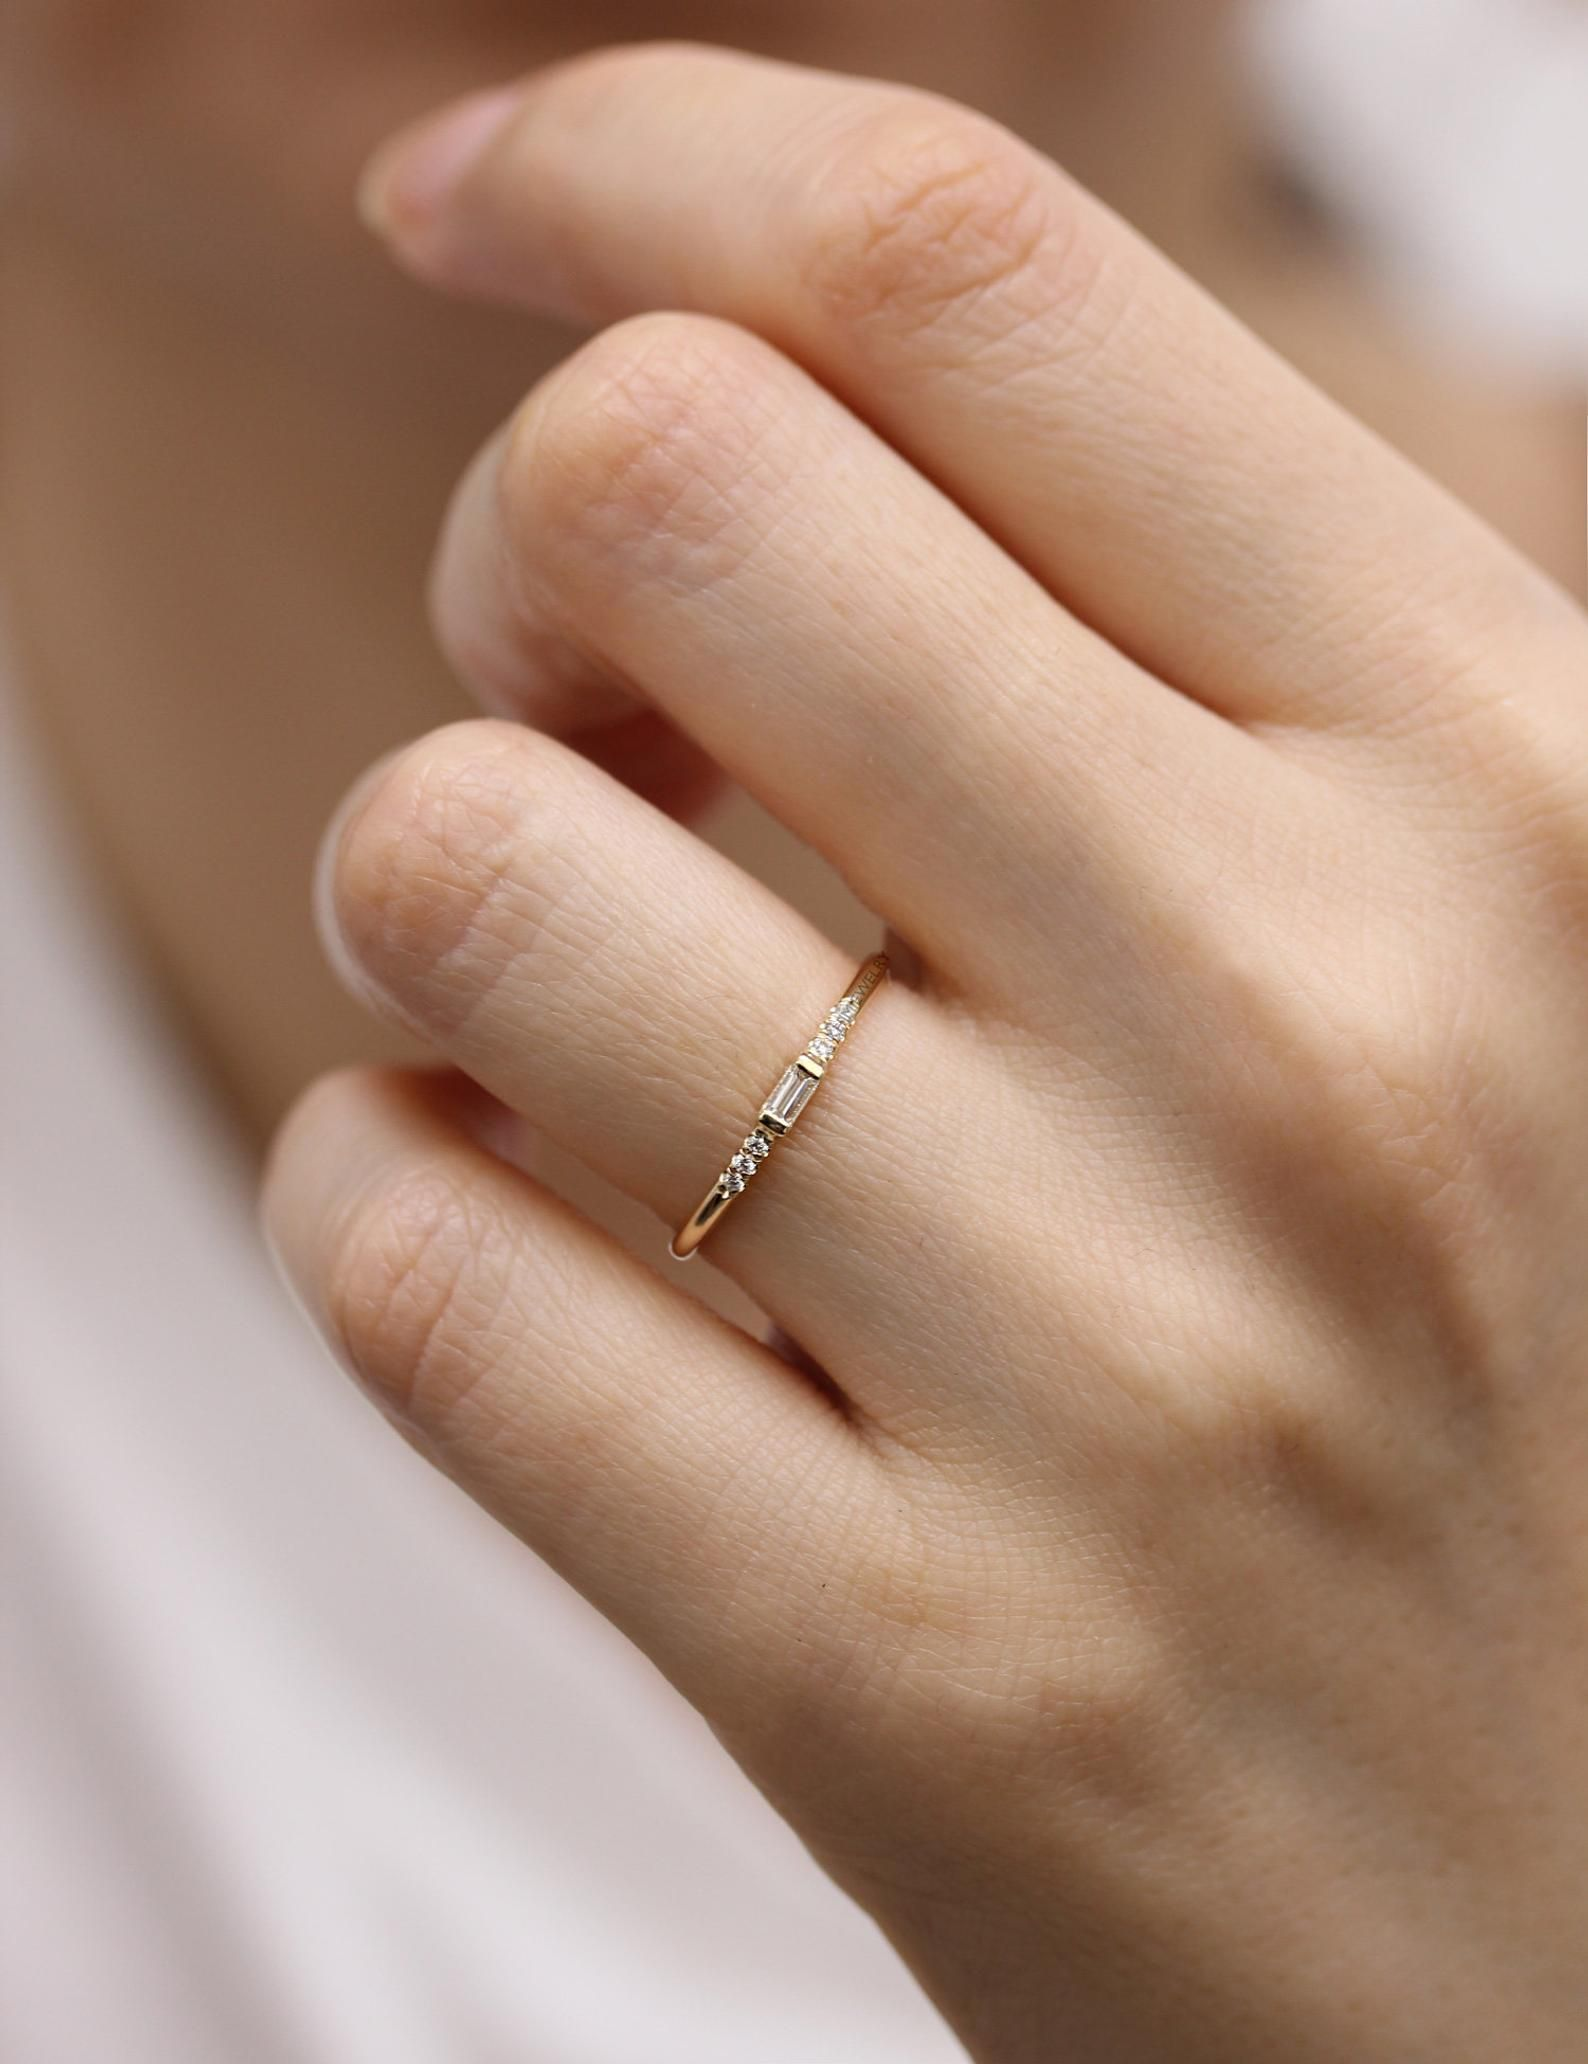 14k gold ring for woman Classic diamond ring stackable ring Modern solid gold ring gemstone ring engagement ring Round diamond ring